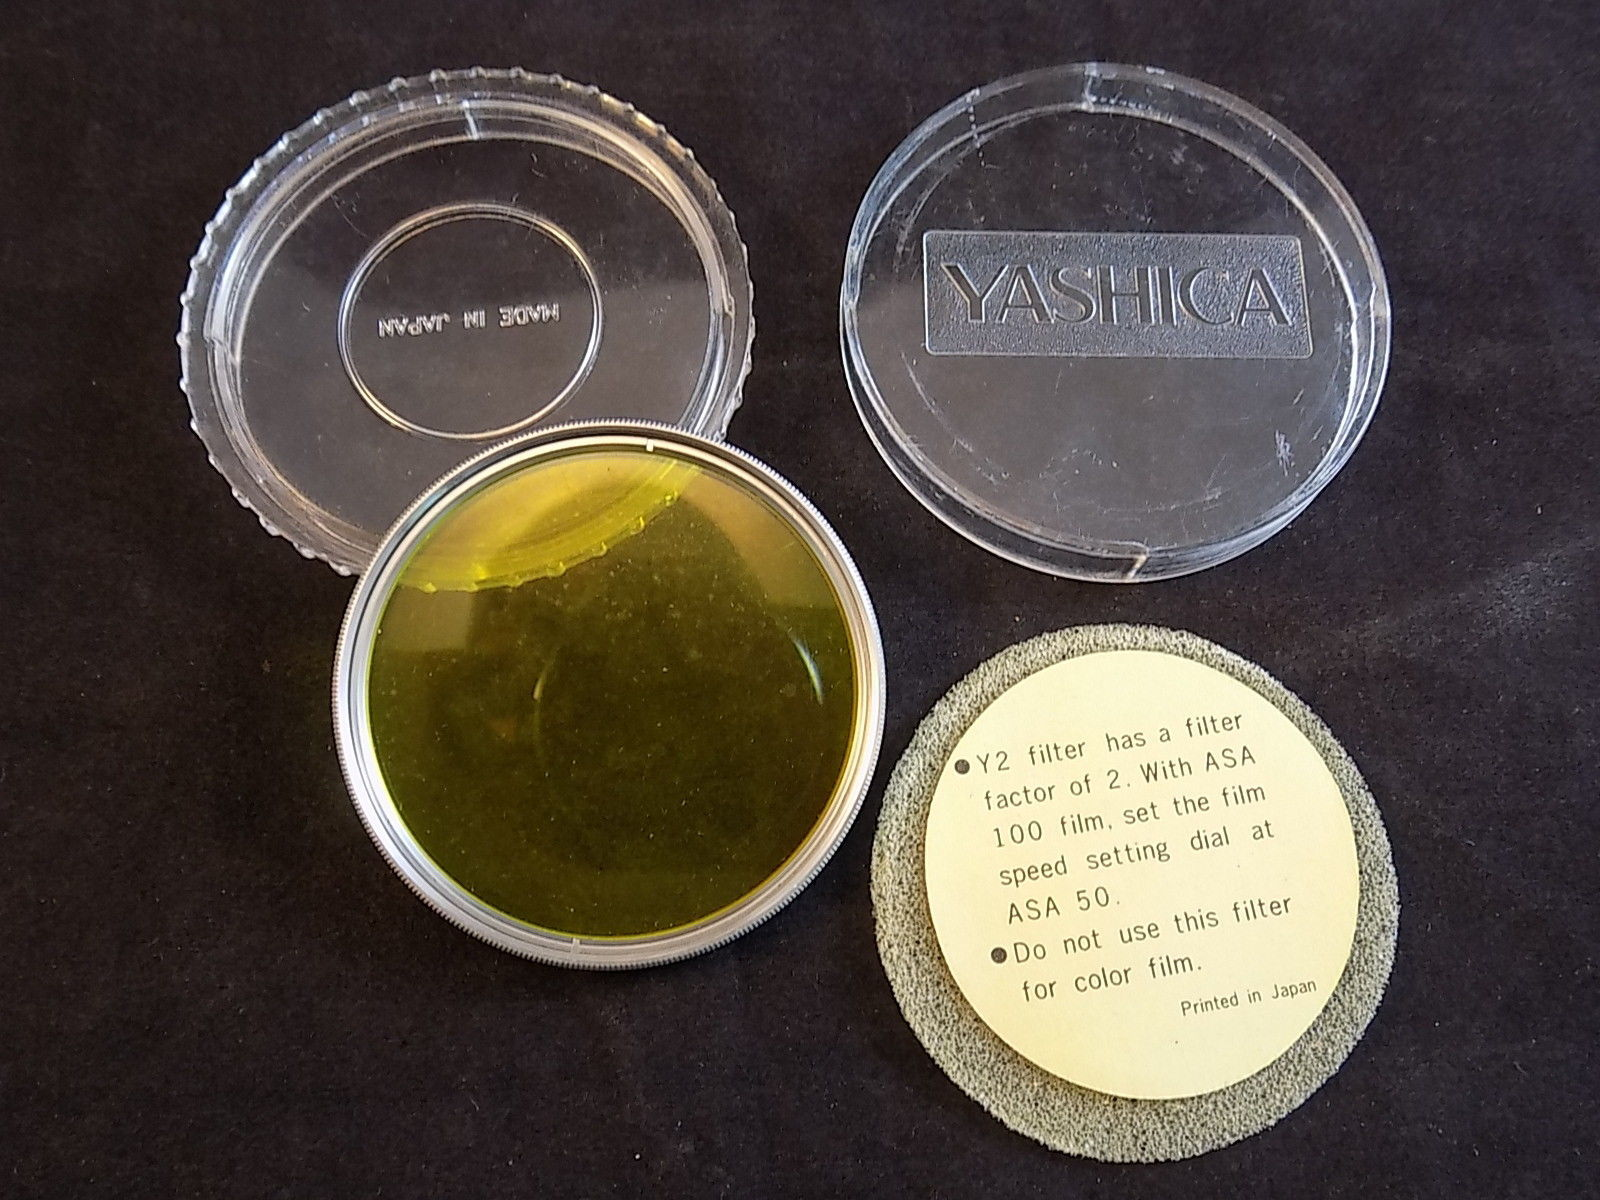 YASHICA Y2 FILTER CAMERA LENS 55mm YELLOW Lens Filter for 35MM Camera